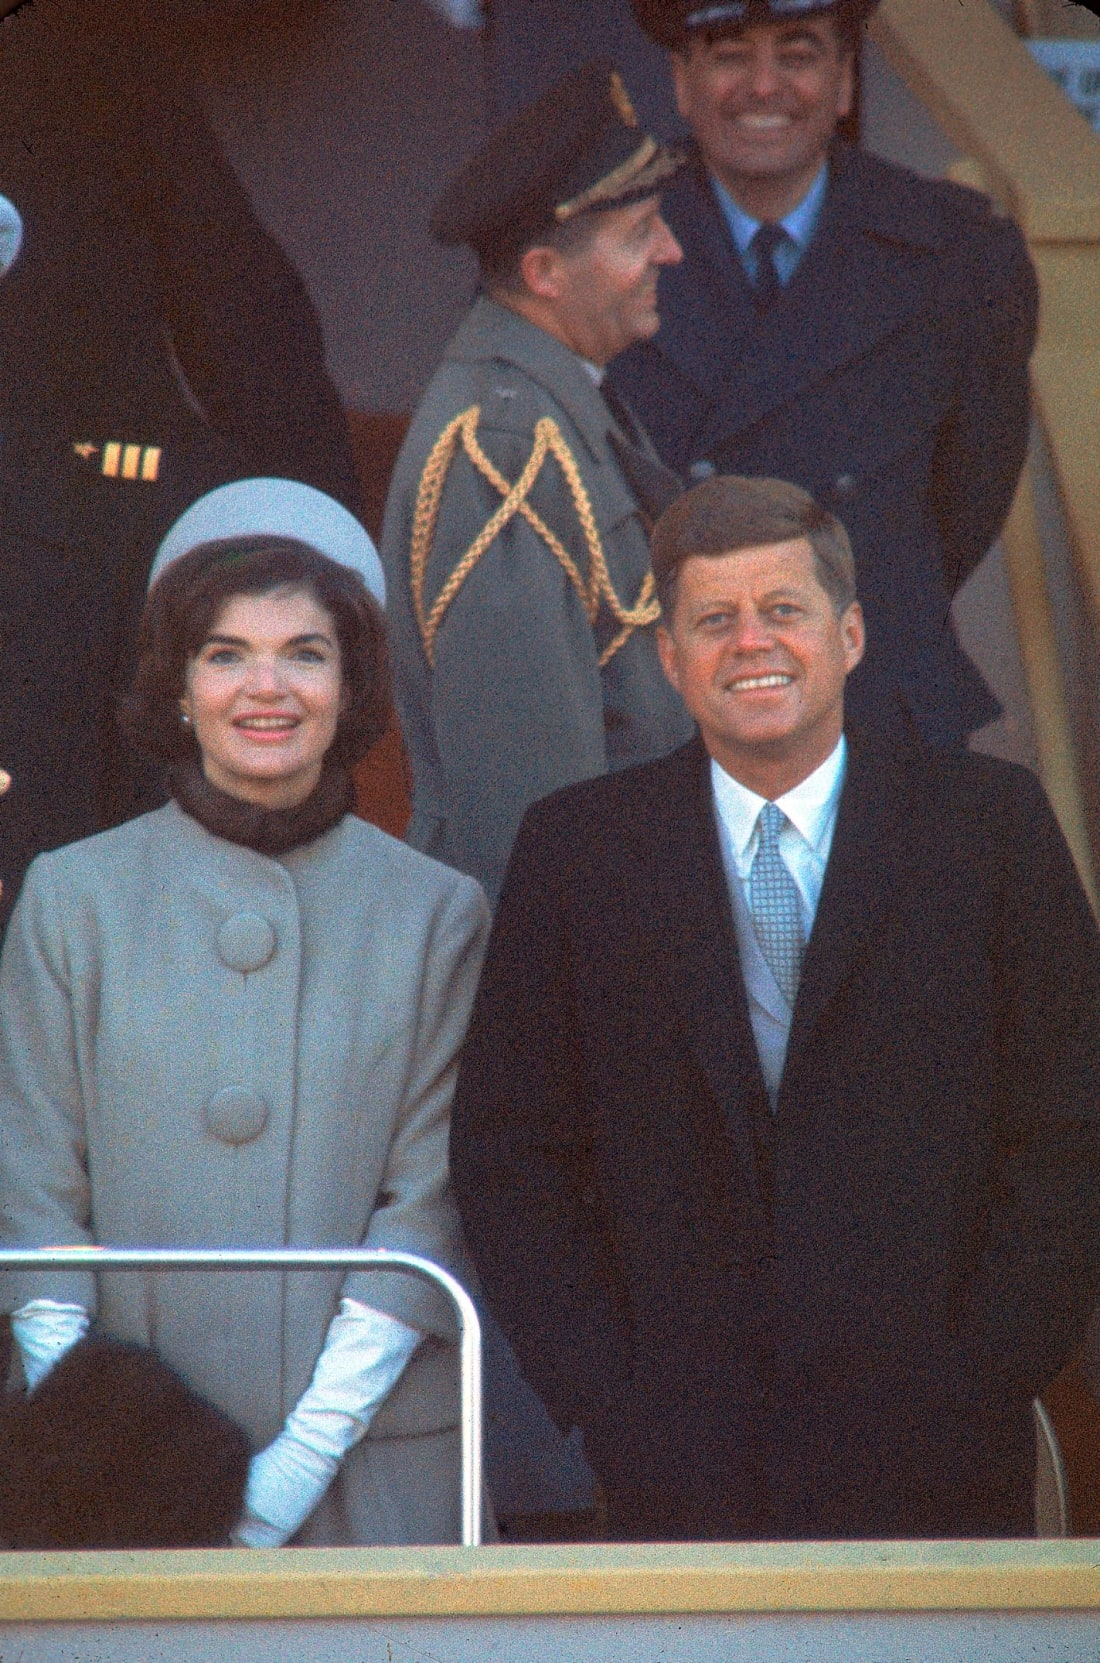 Jackie Kennedy on inauguration day in 1961.